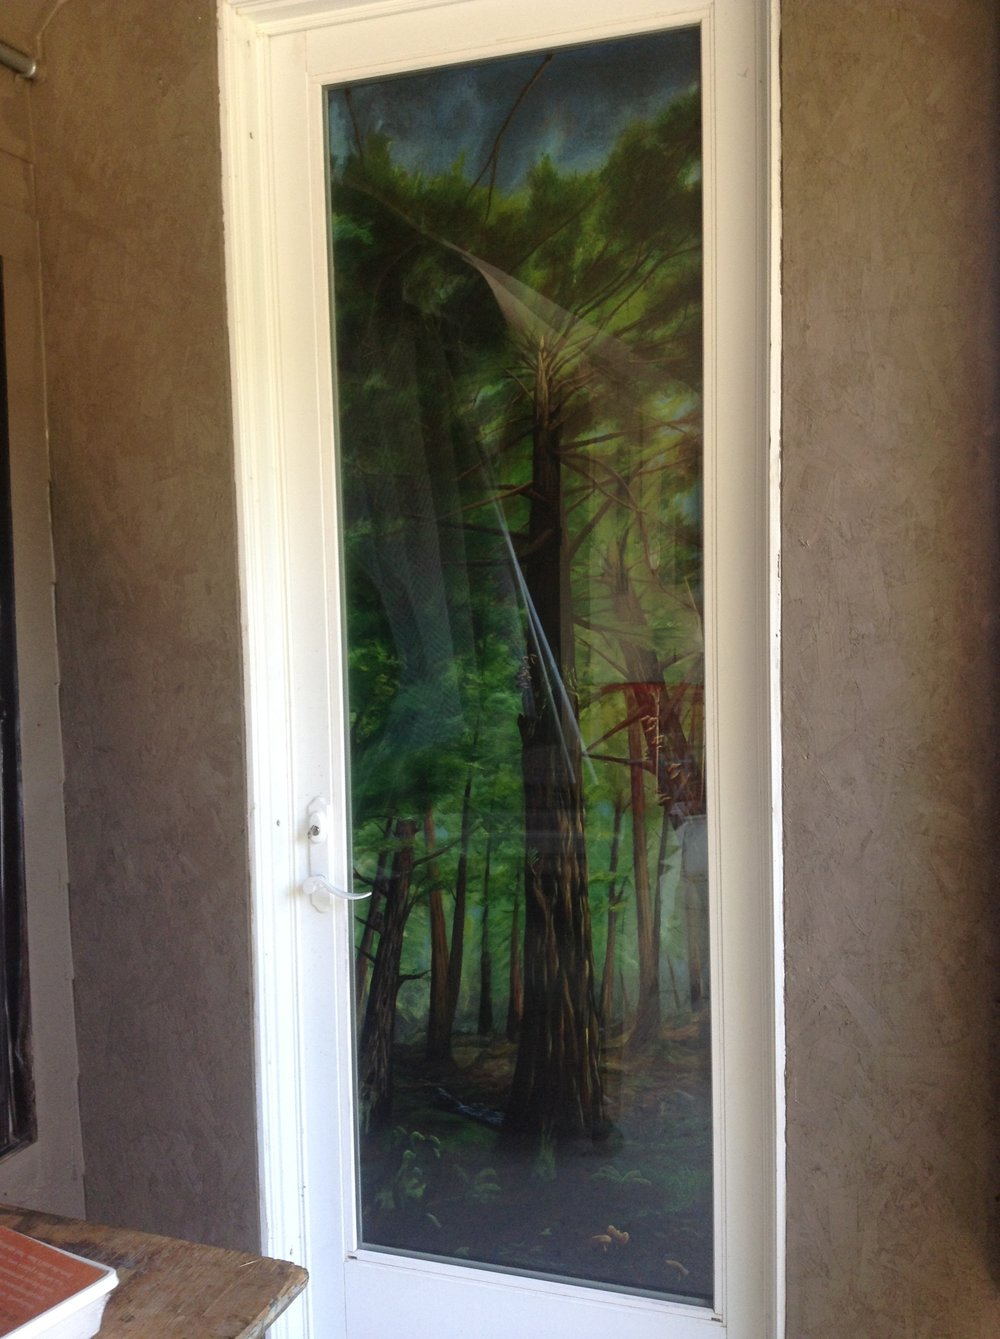 Finished piece behind glass door.